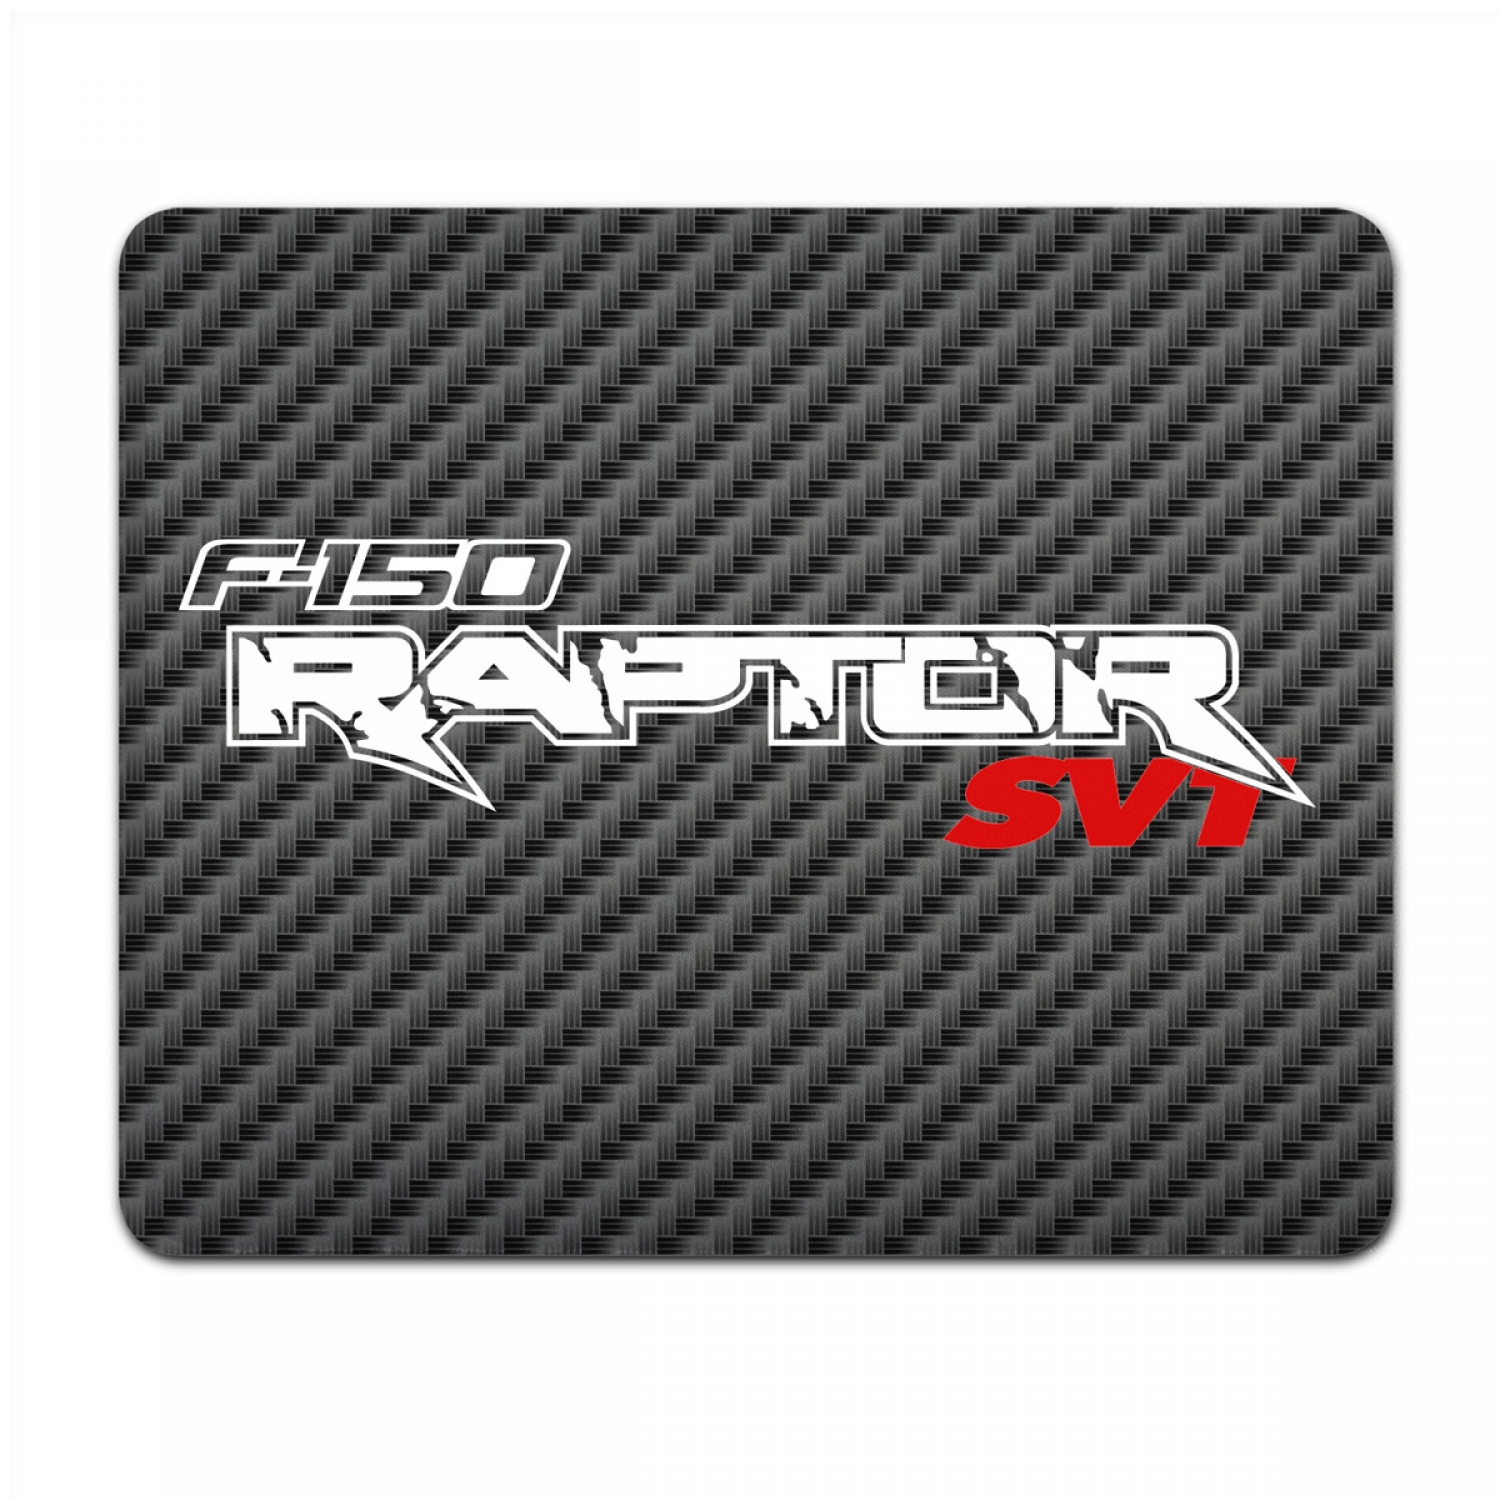 Ford F-150 Raptor SVT 2010 to 2014 Black Carbon Fiber Texture Graphic PC Mouse Pad